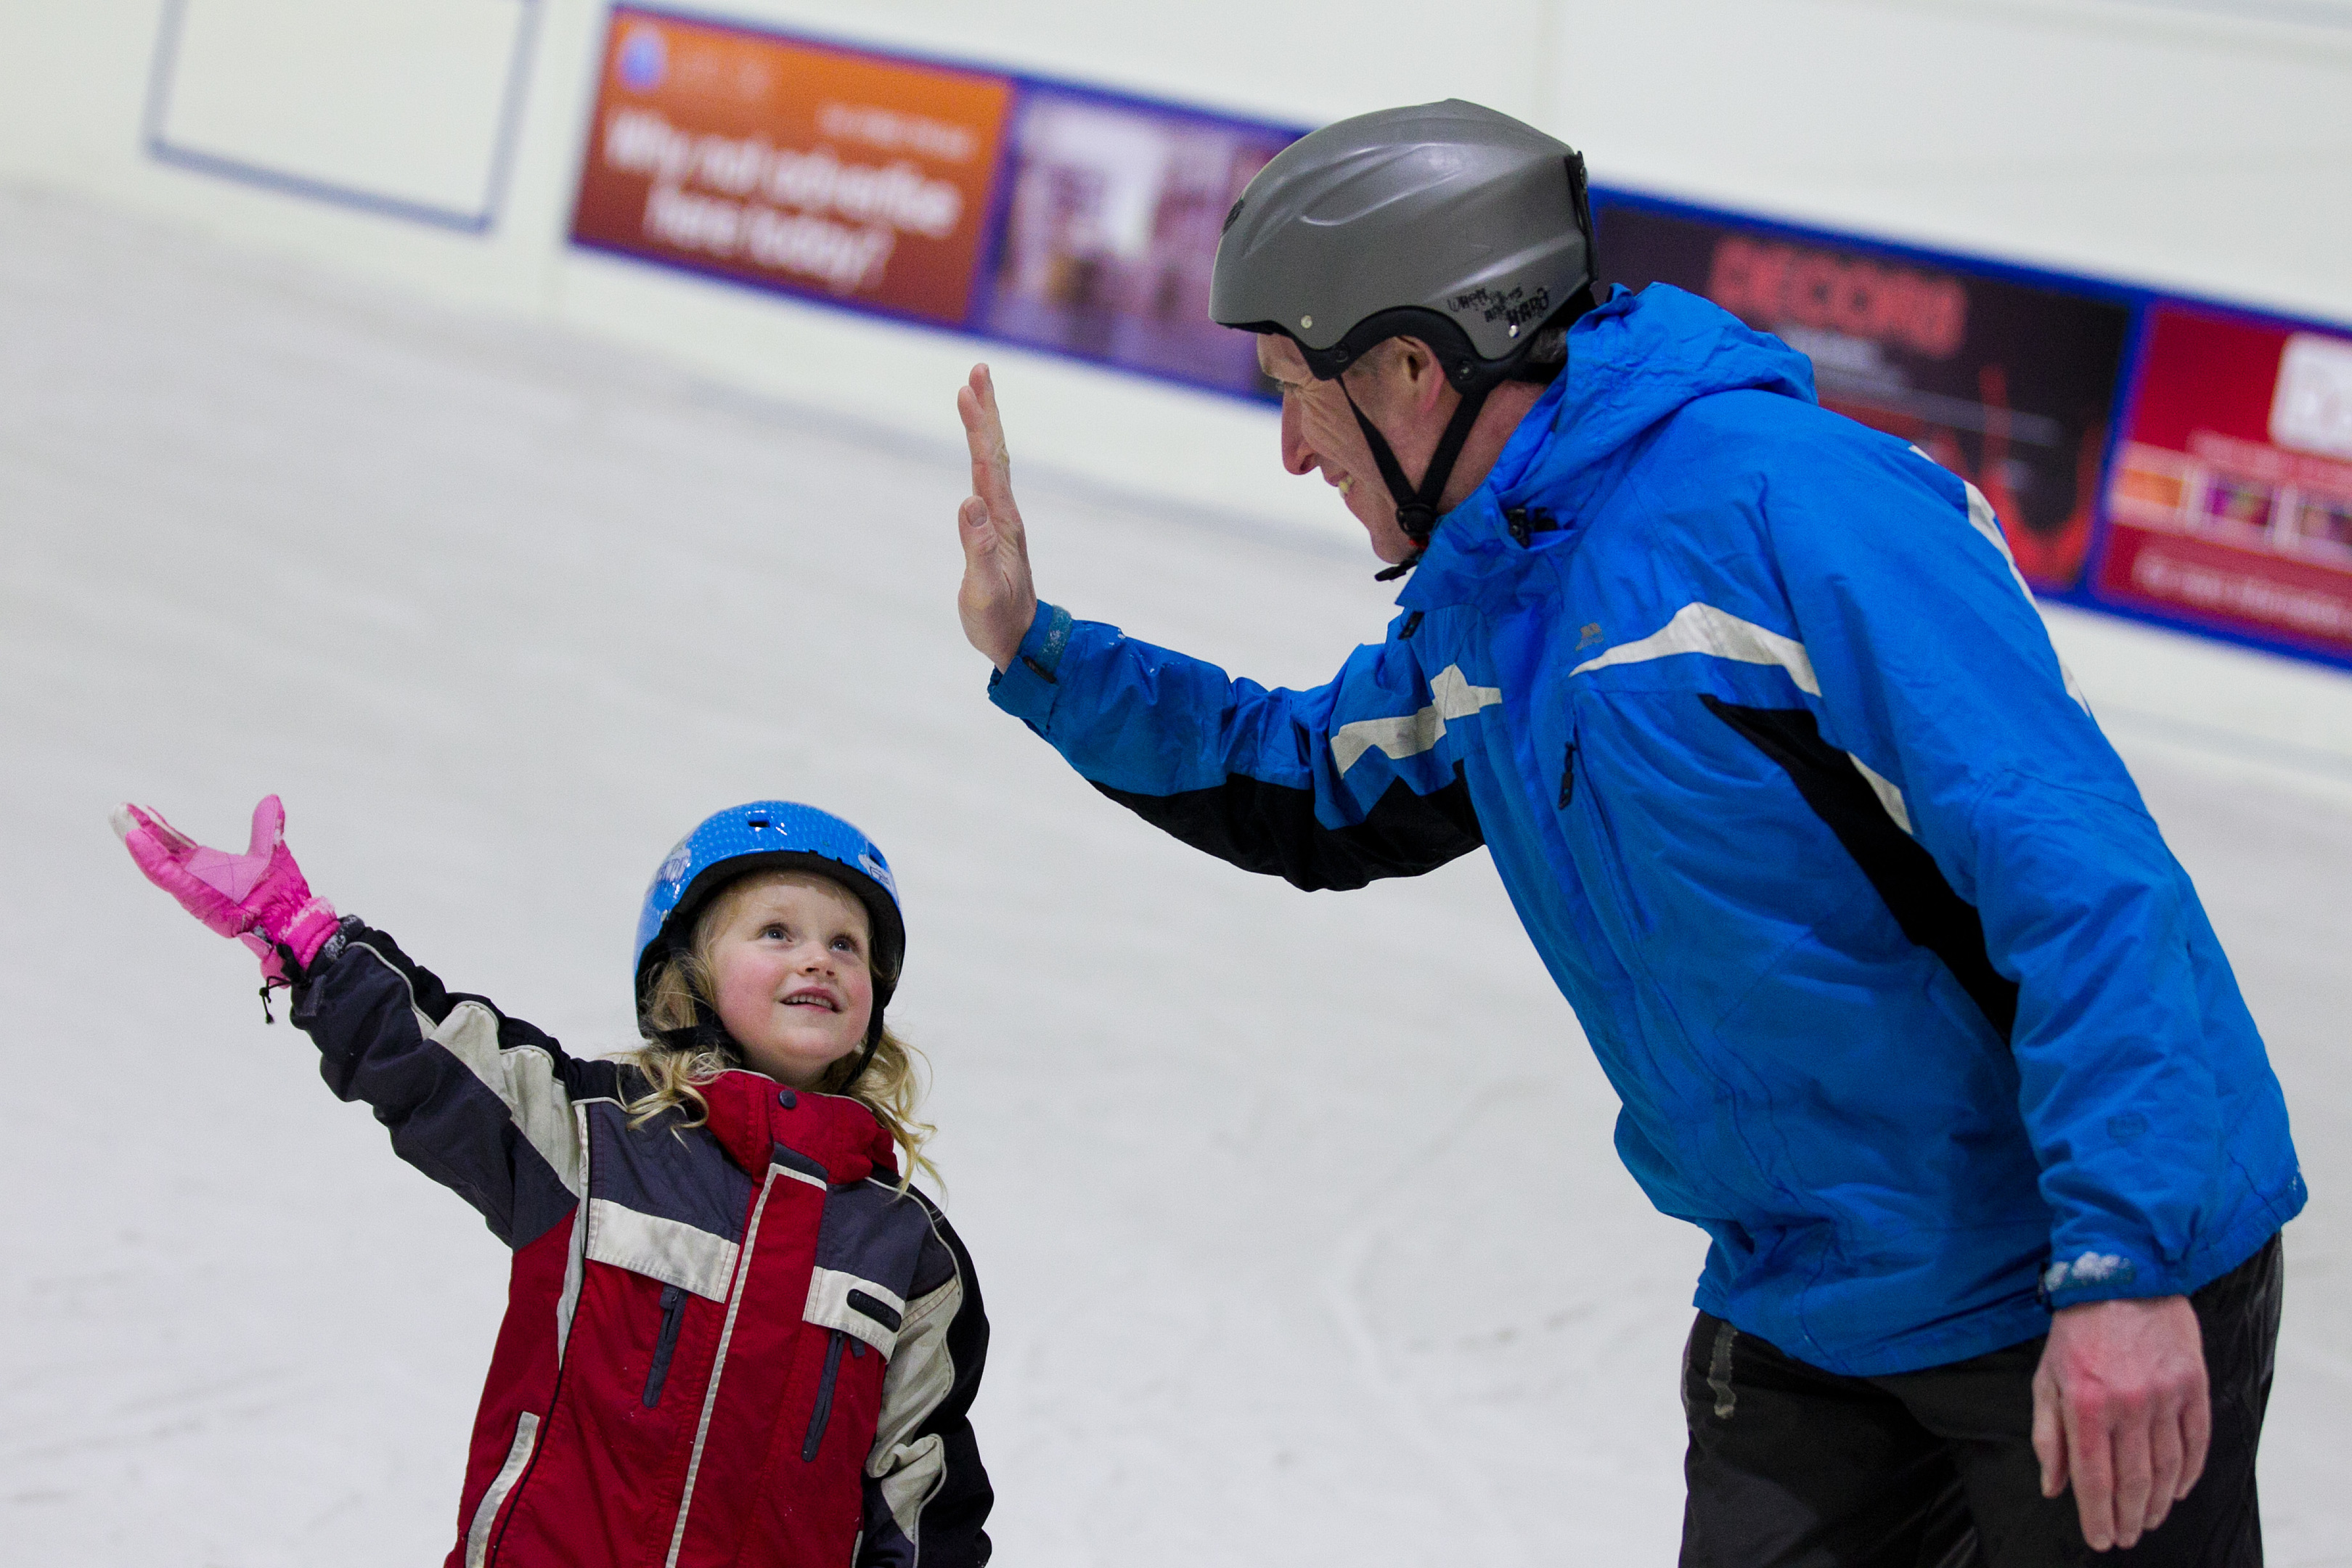 Craig learns to ski with daughter Megan (Andrew Cawley / DC Thomson)